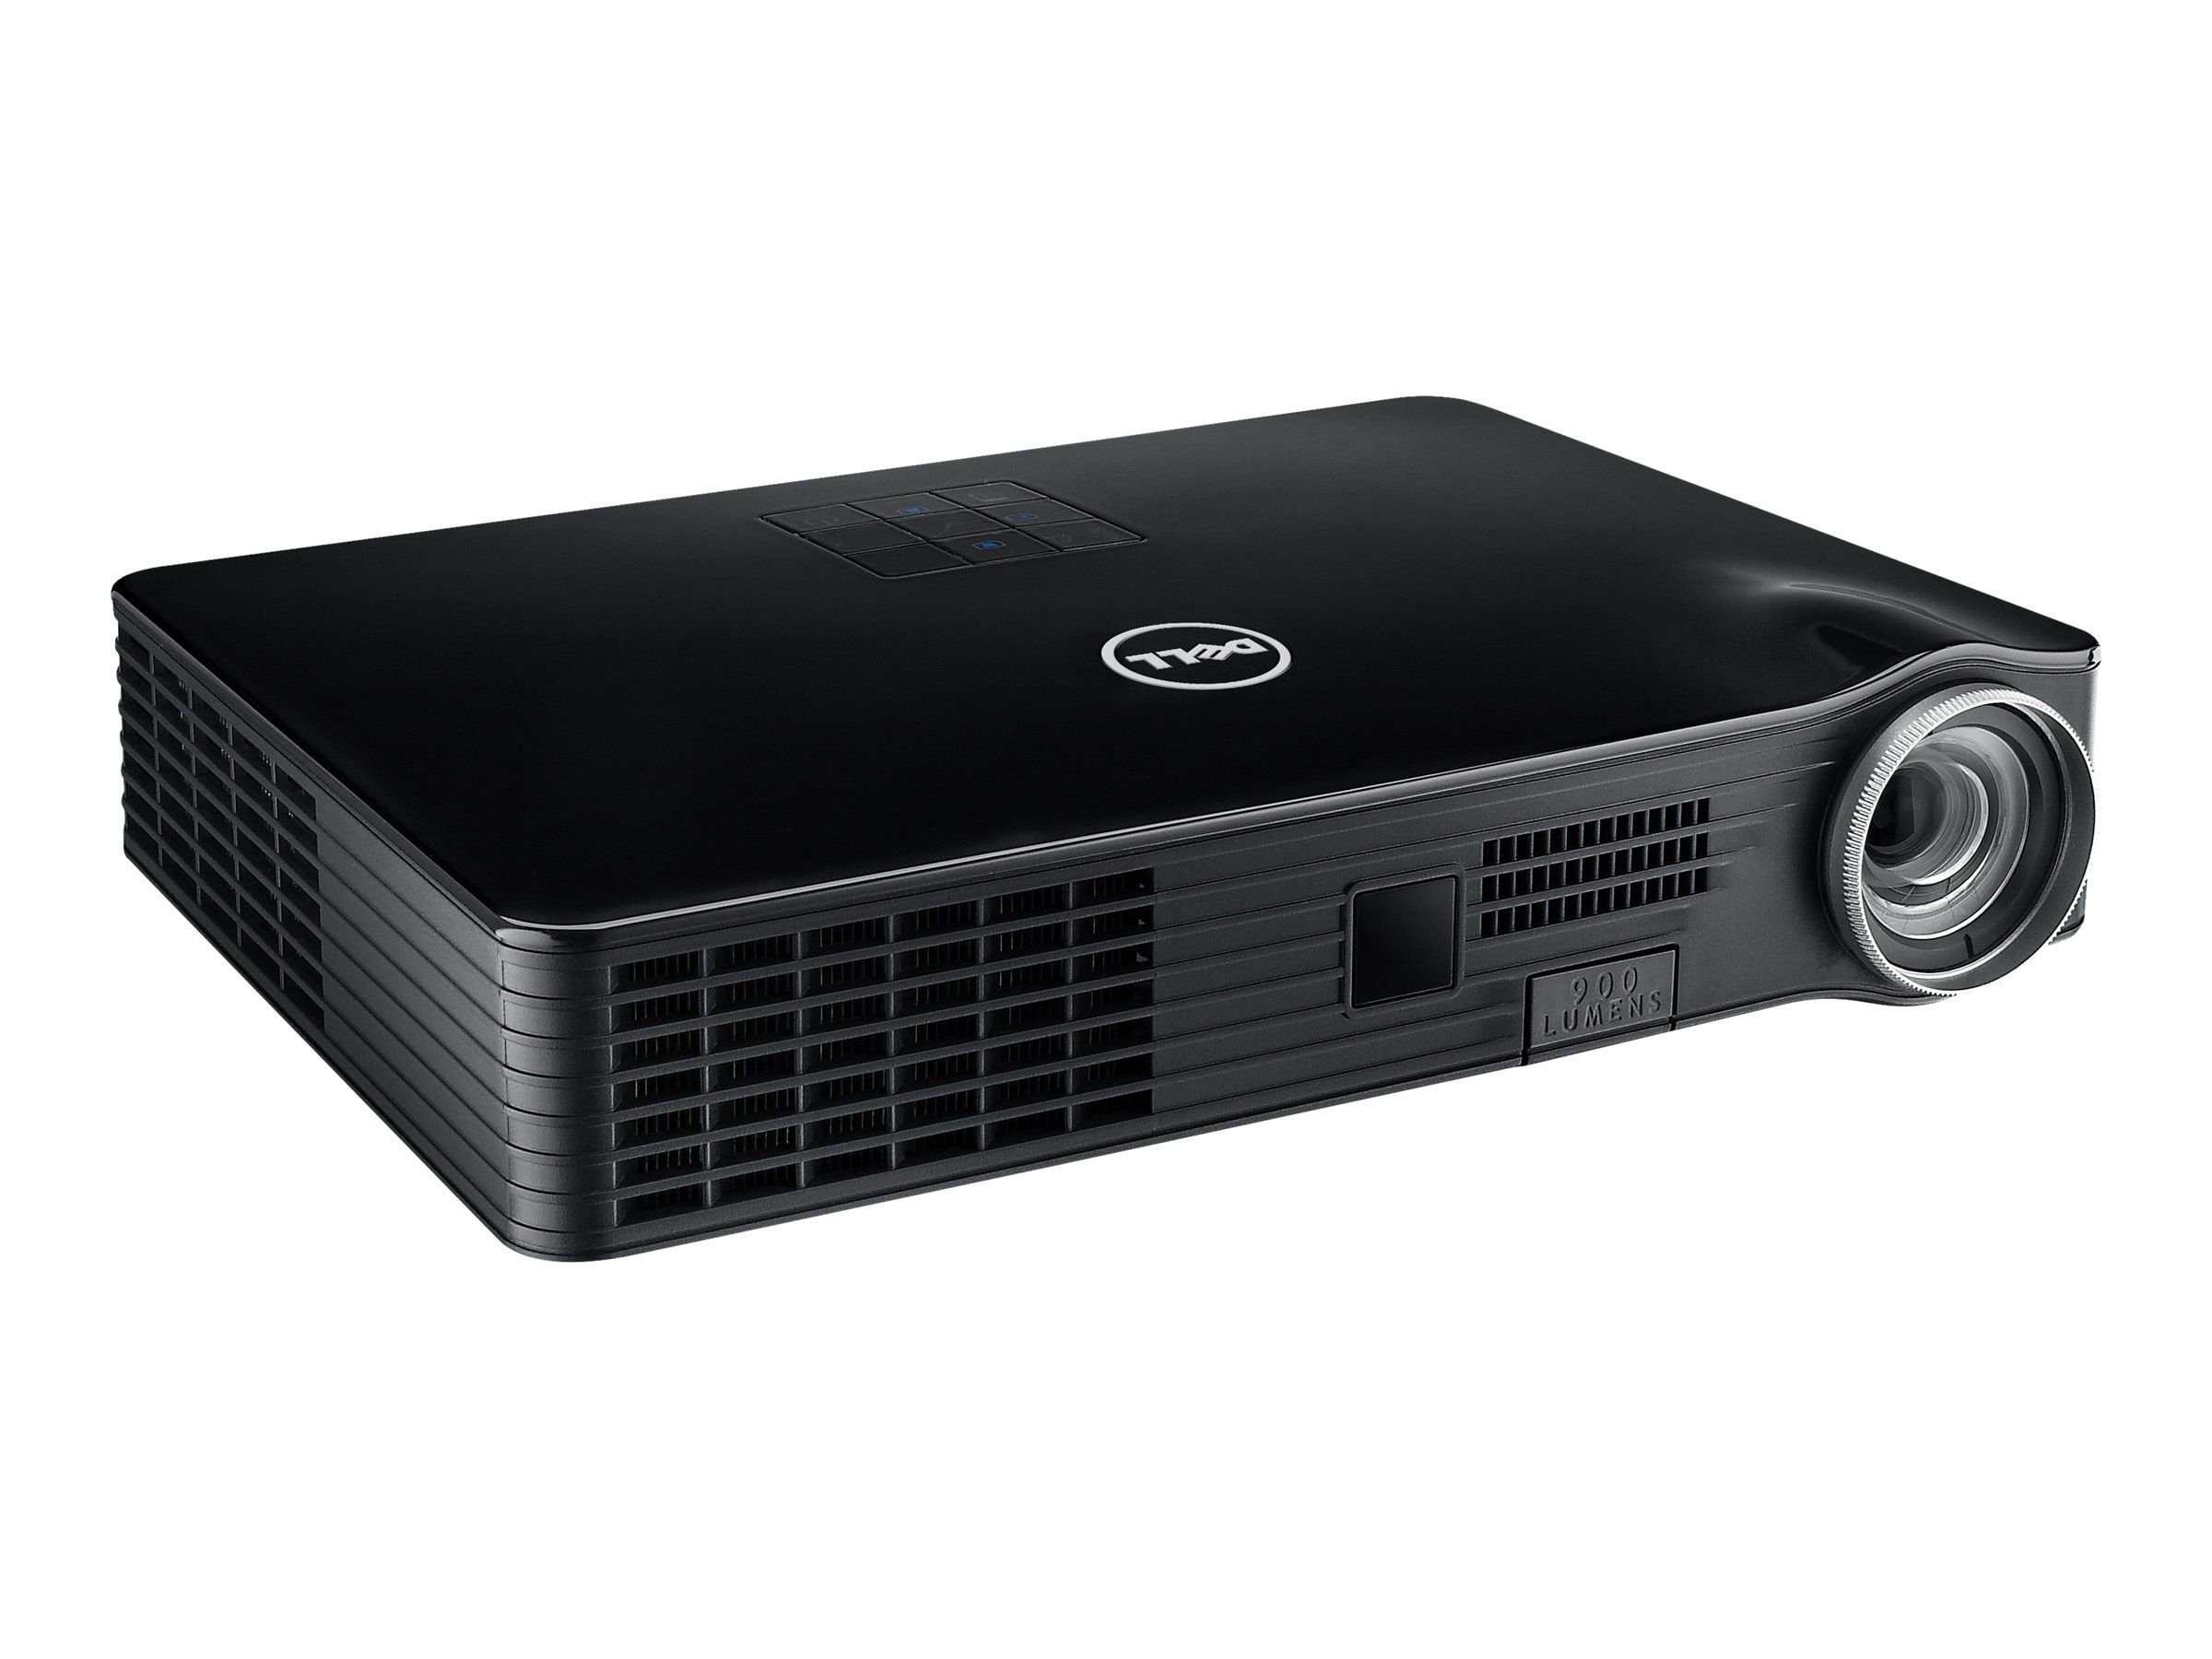 Dell M900HD WXGA LED Projector, 900 Lumens, Black, M900HD, 16477217, Projectors